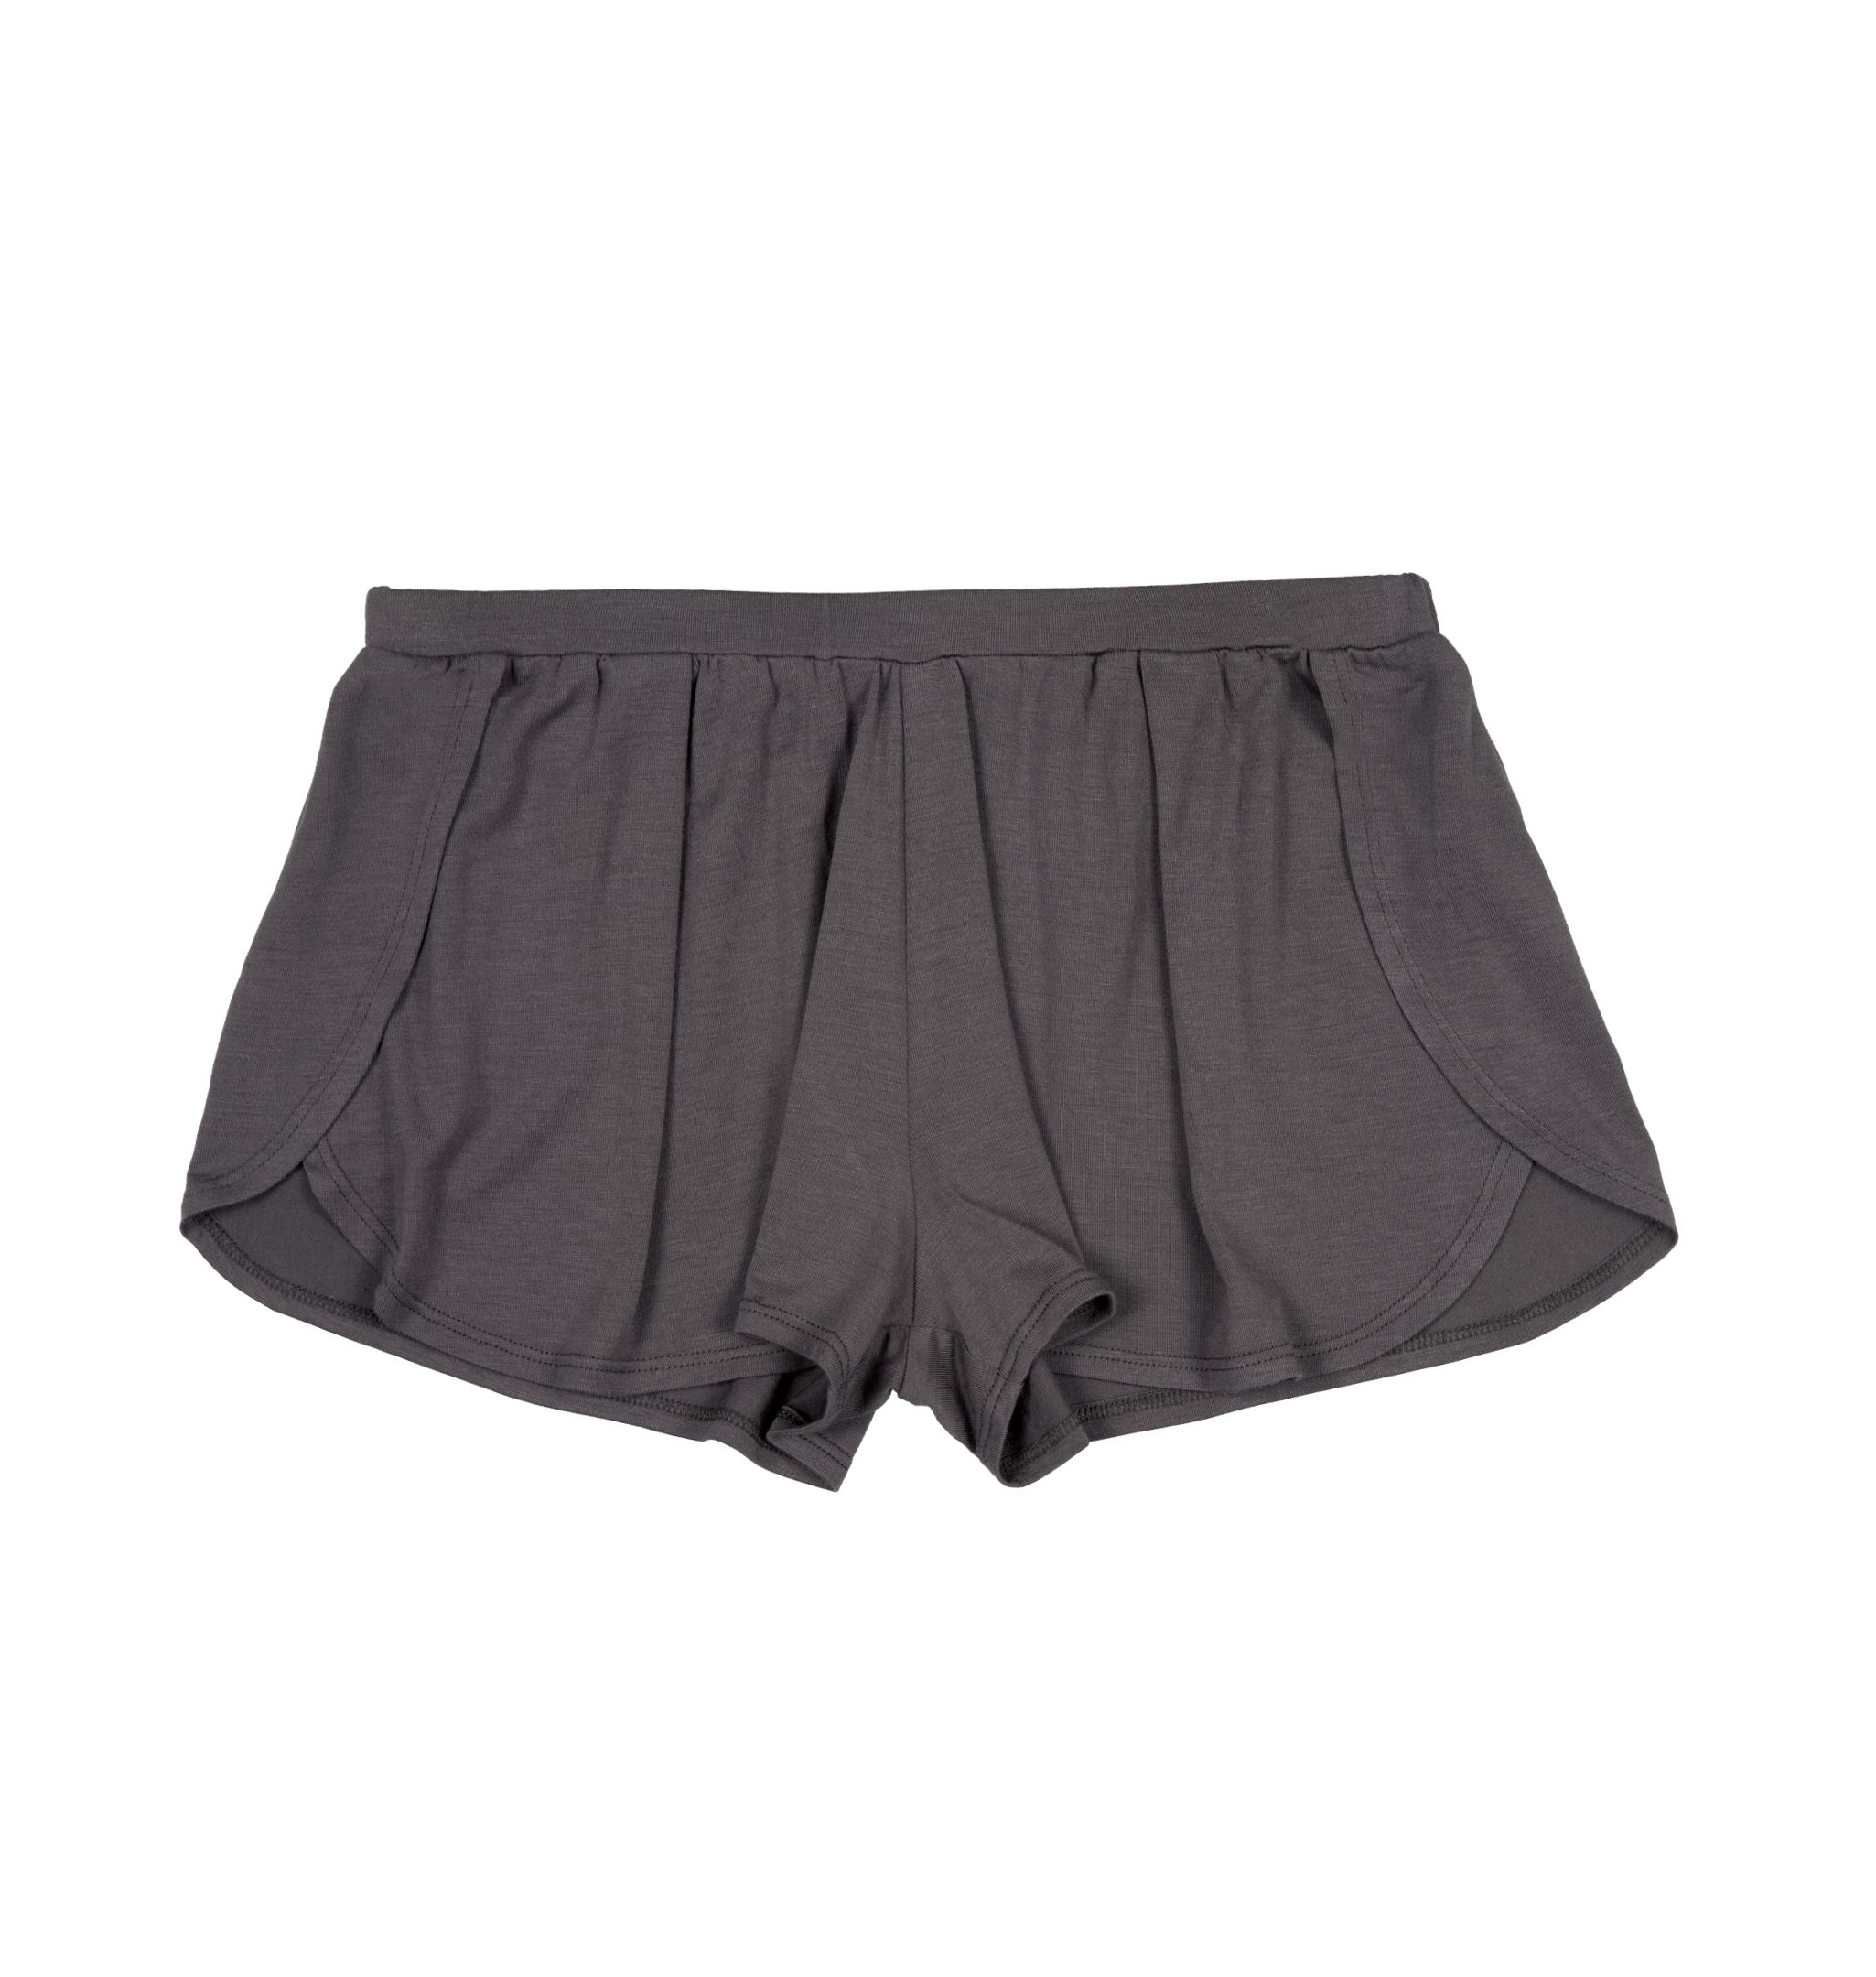 // easy-fit short by uniform | trueandco.com